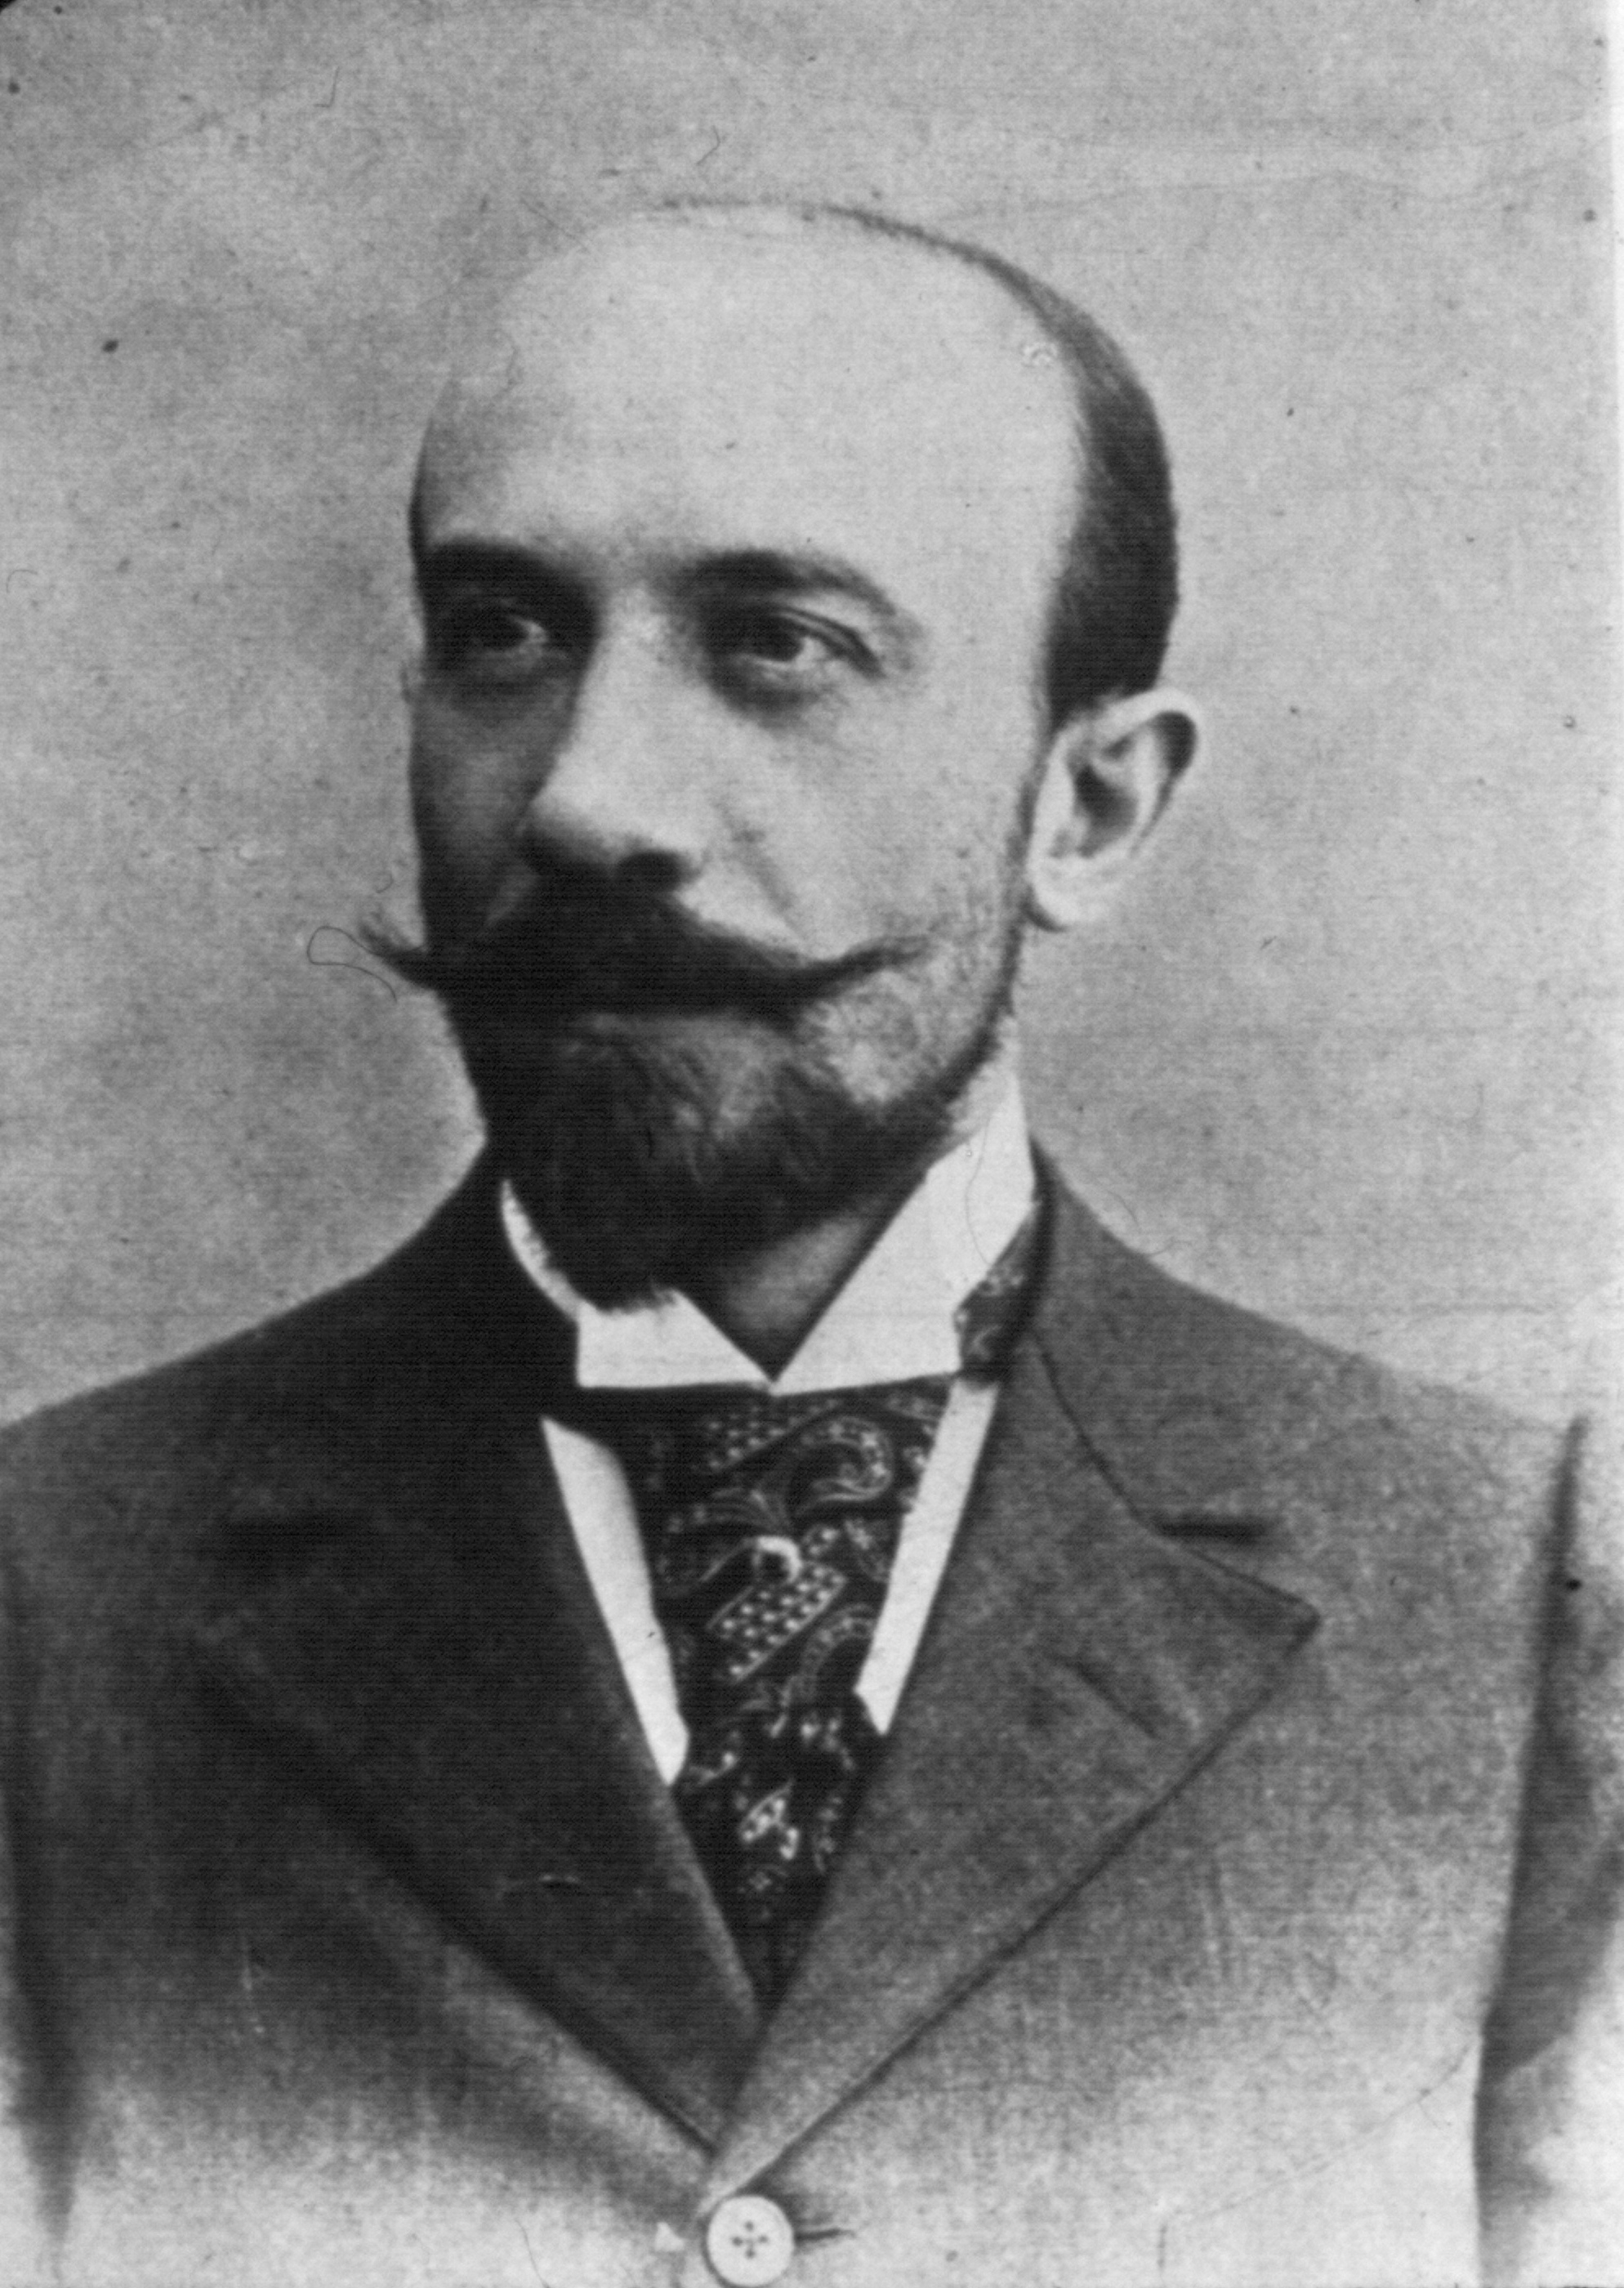 Image of Georges Méliès from Wikidata